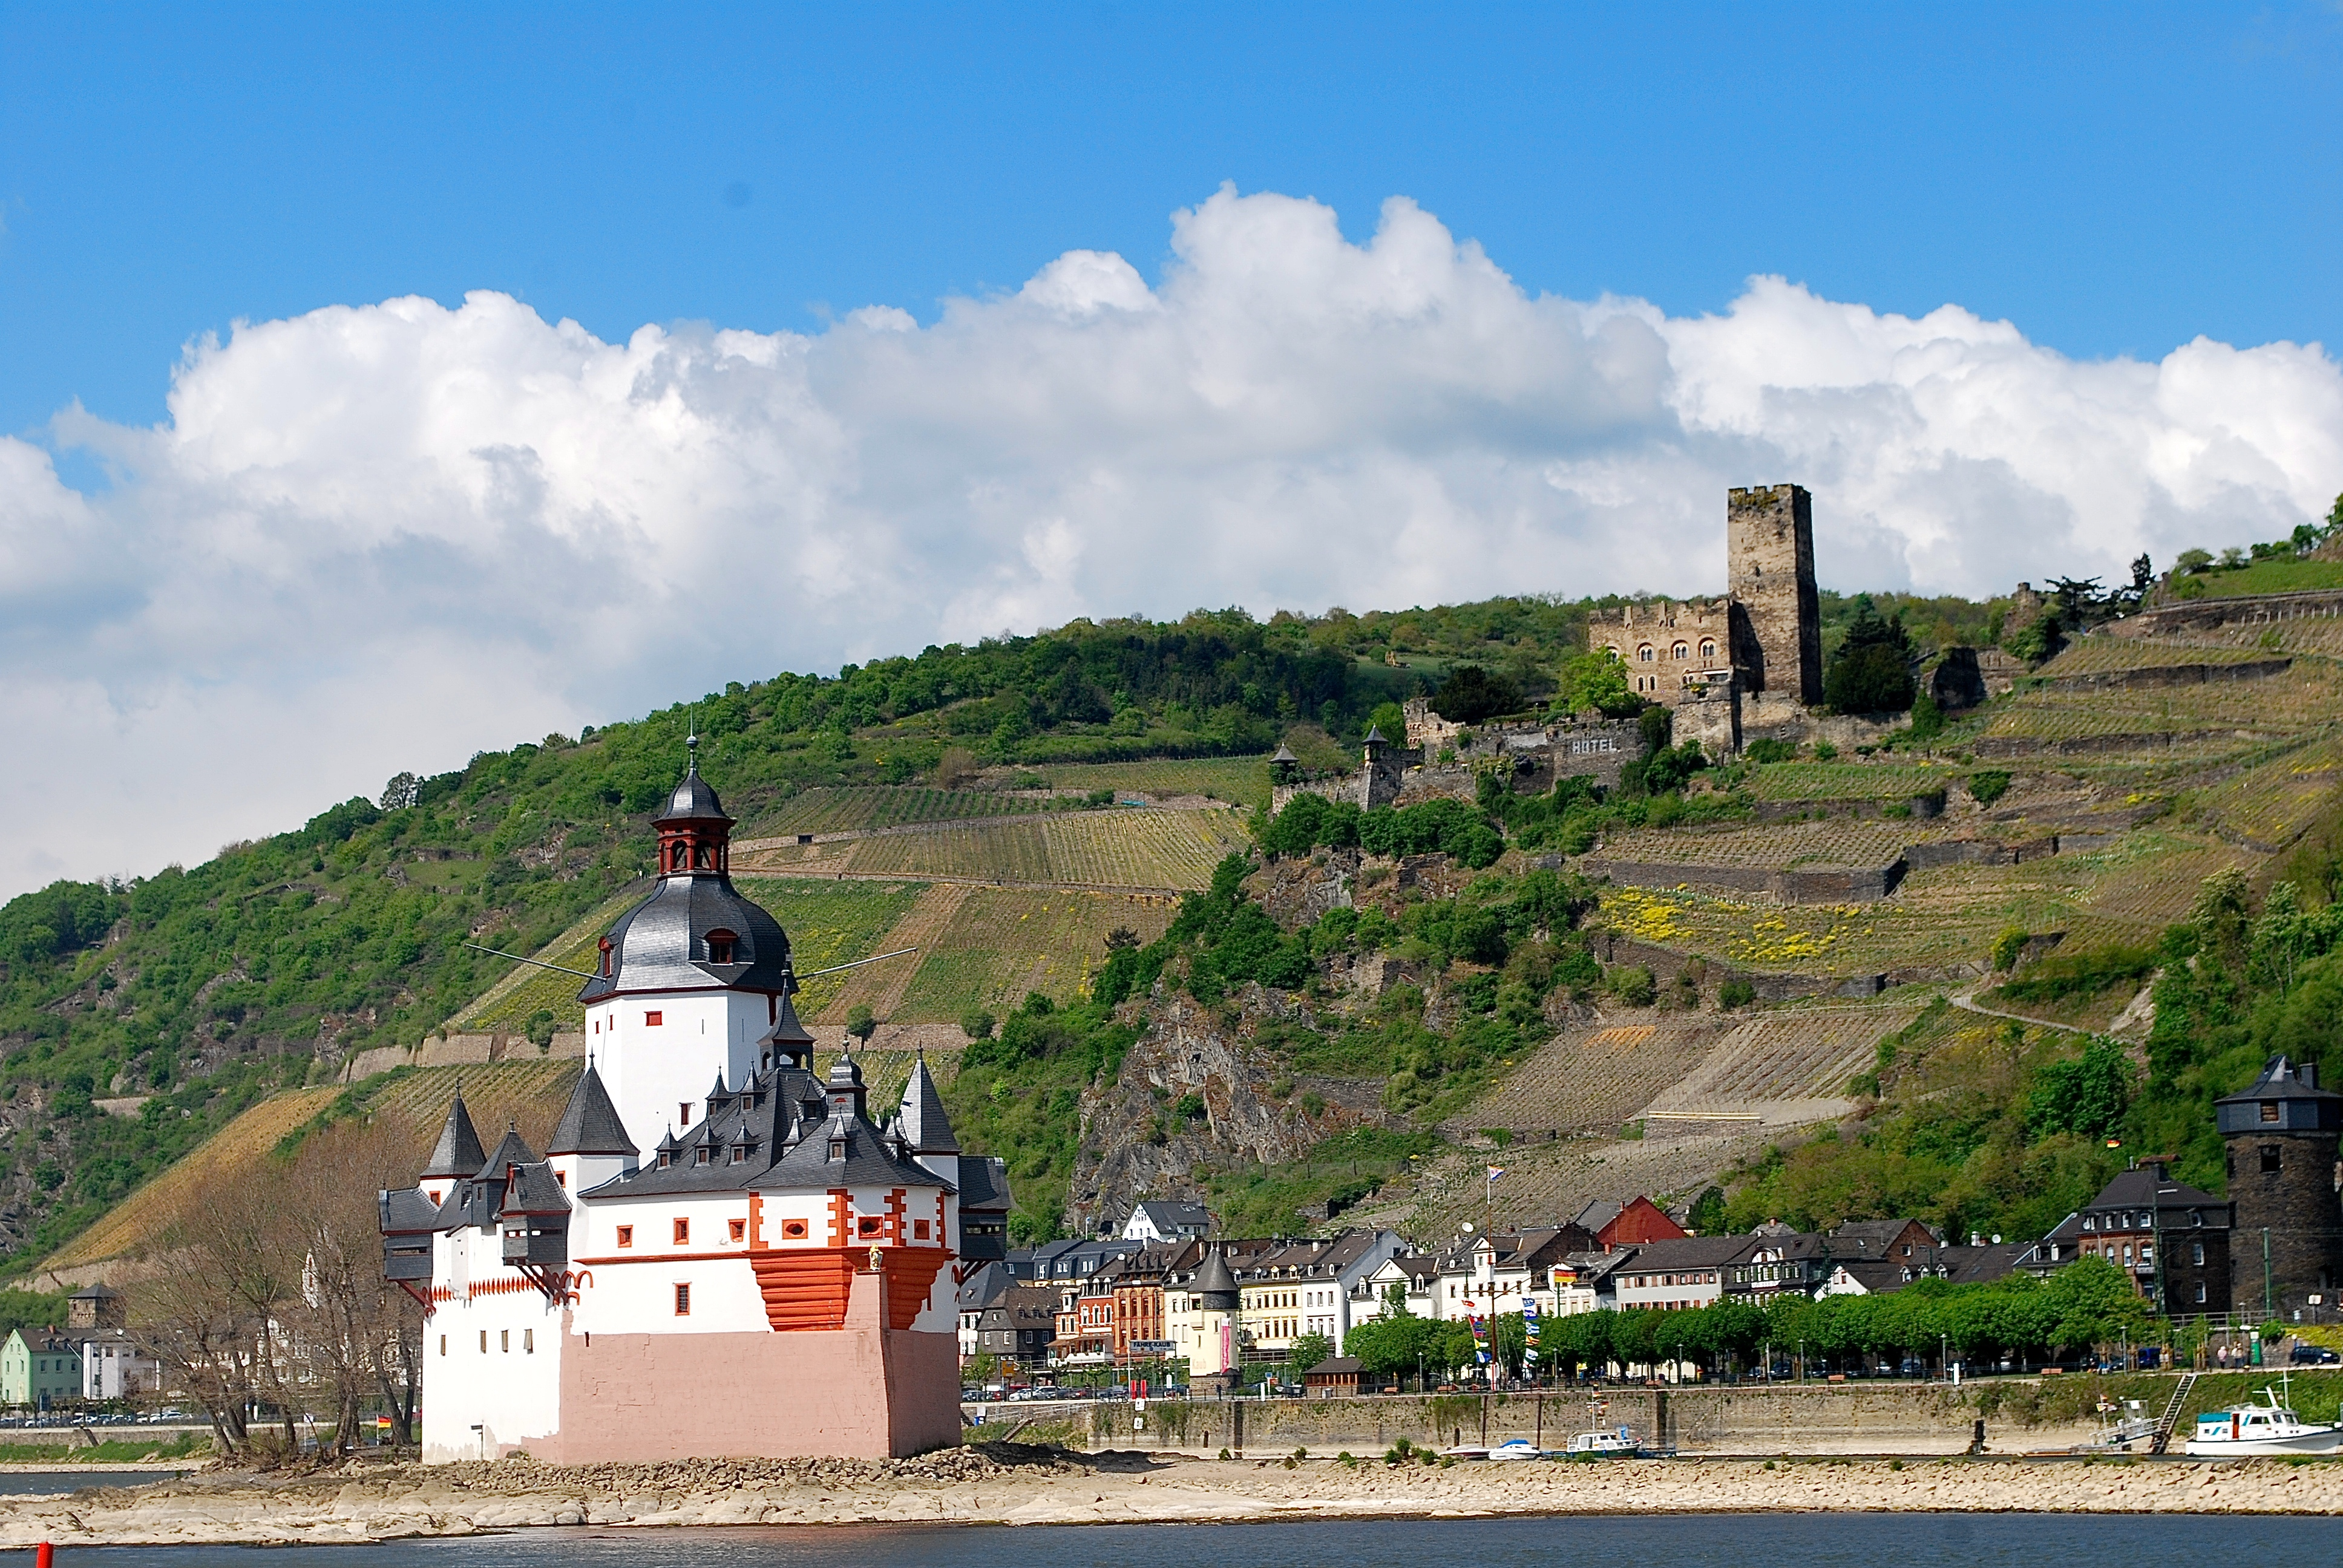 The Pfalz with Burg Gutenfels castle in the background